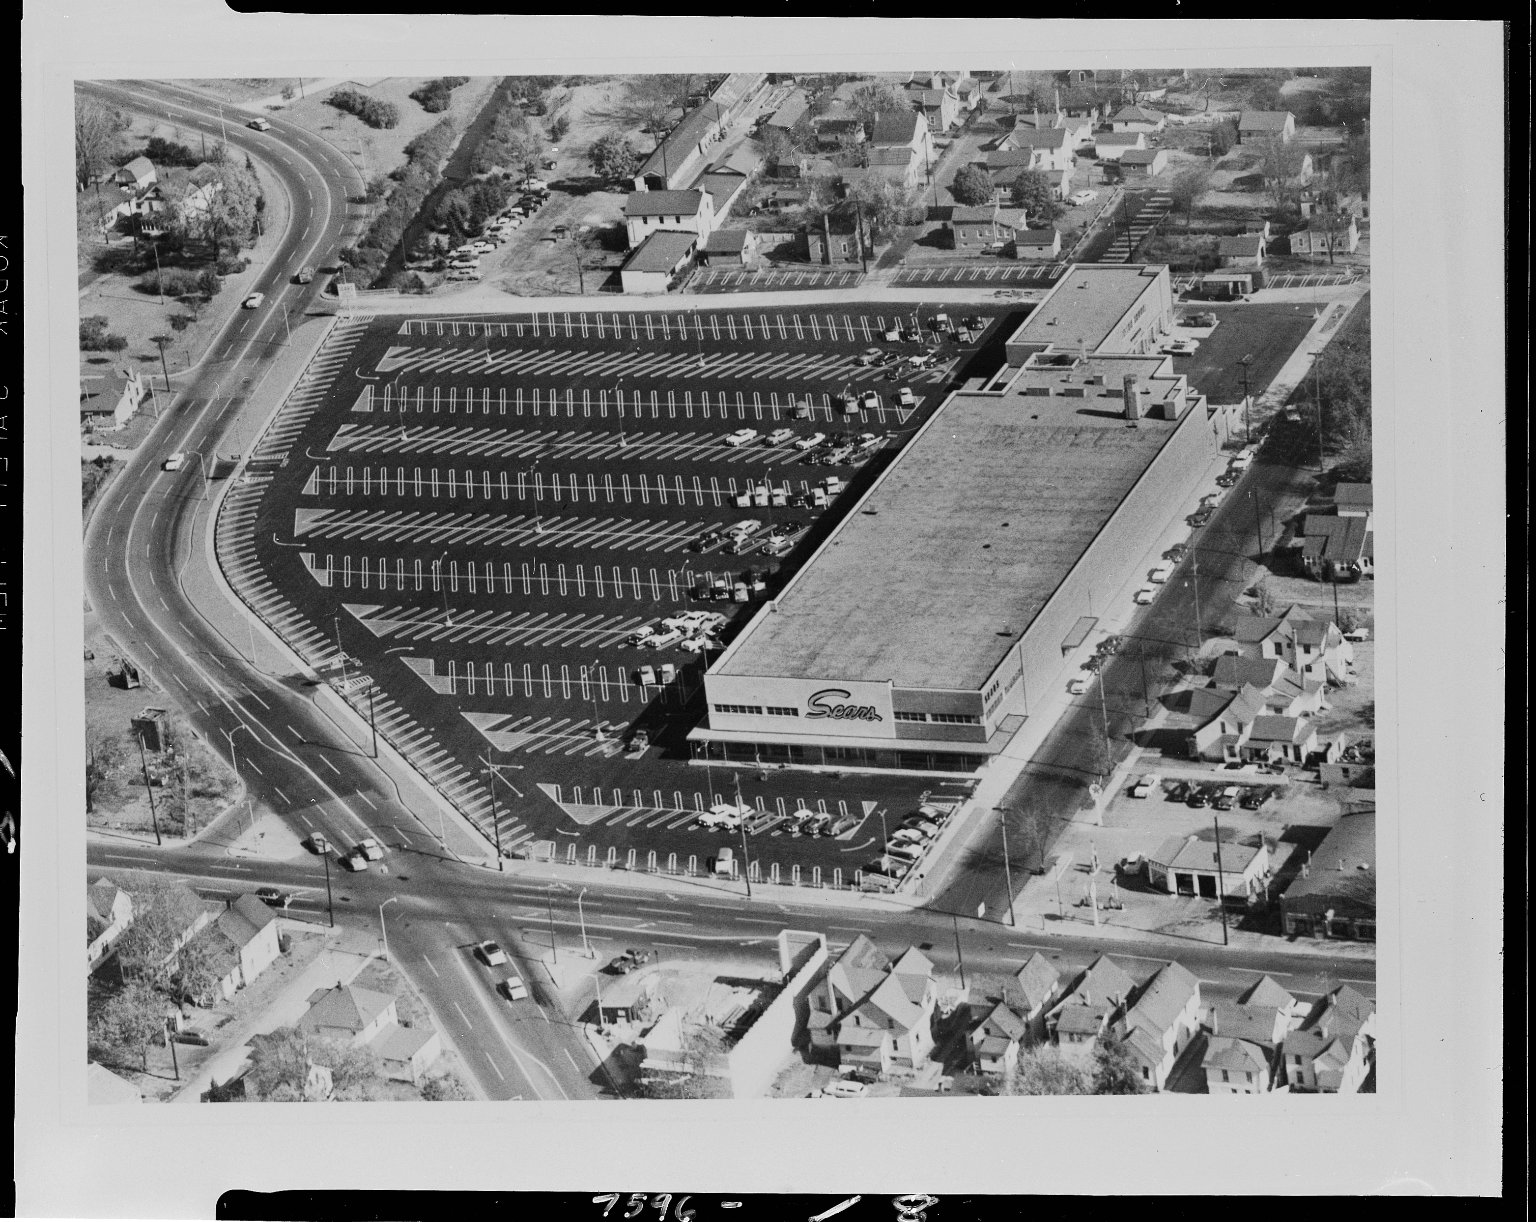 Sears Store and surrounding area, aerial view